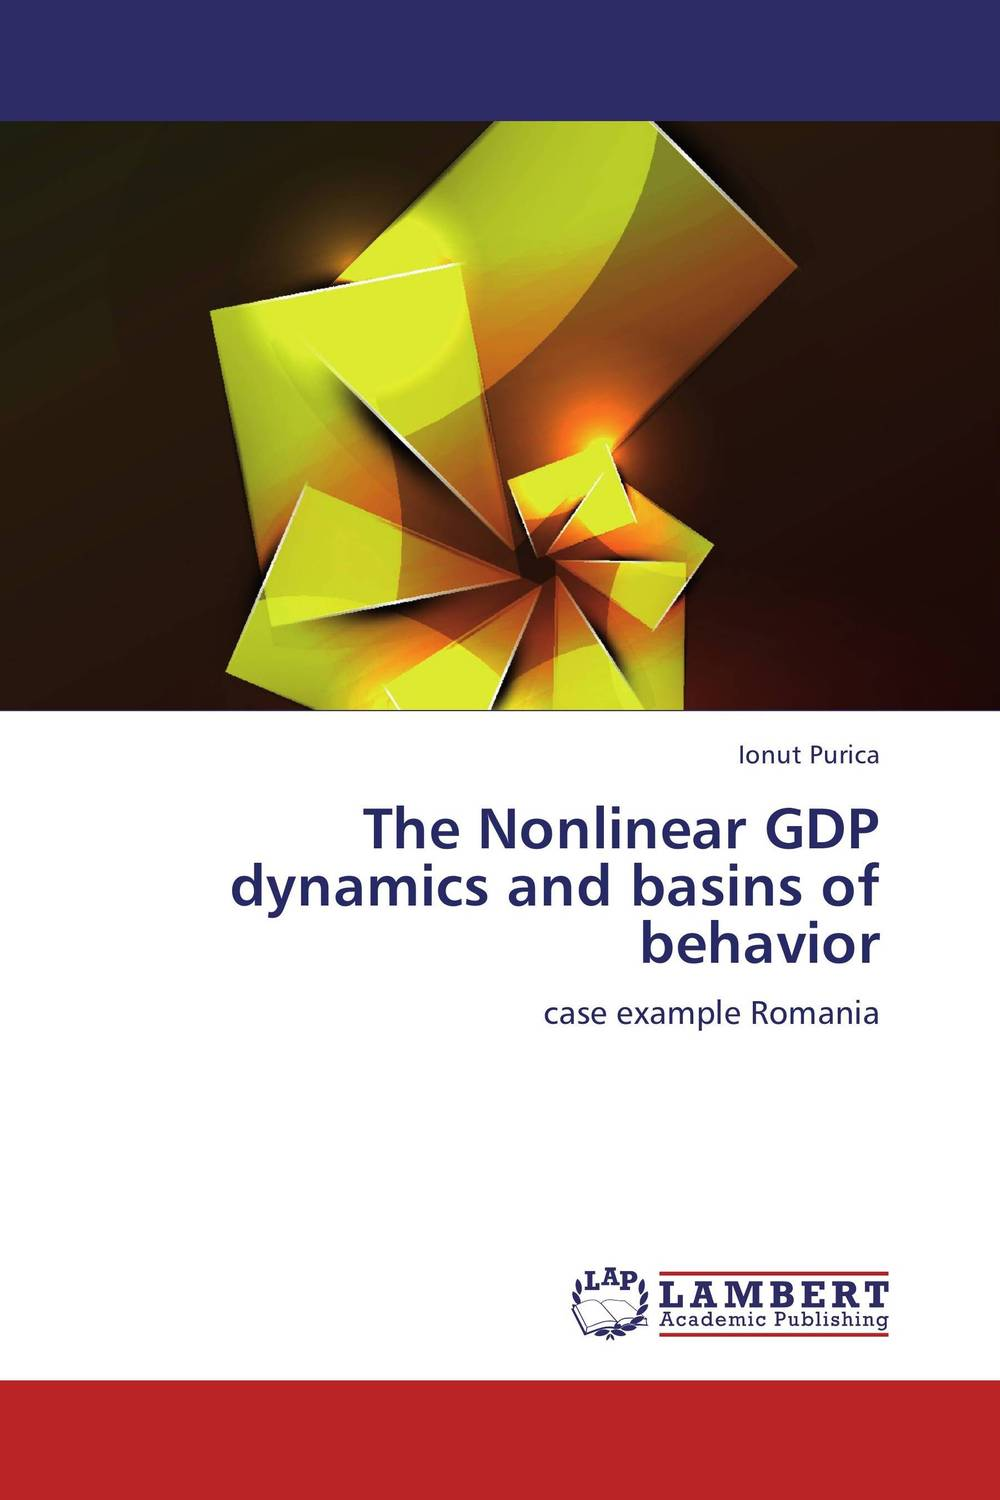 The Nonlinear GDP dynamics and basins of behavior